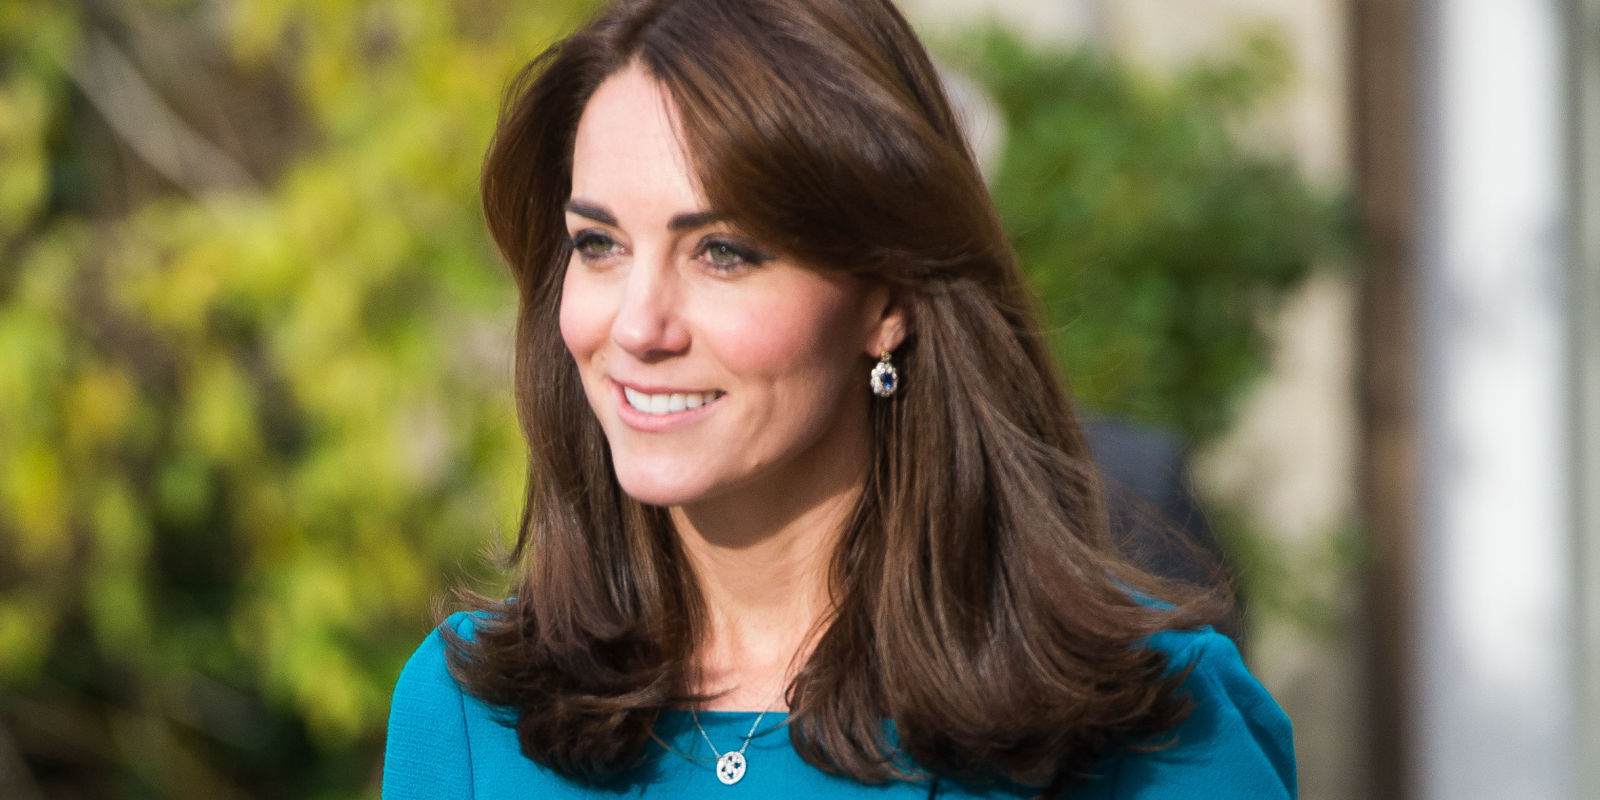 15 Best New Princess Hairstyles: Kate Middleton's Hair Stylist Explains Why She Went